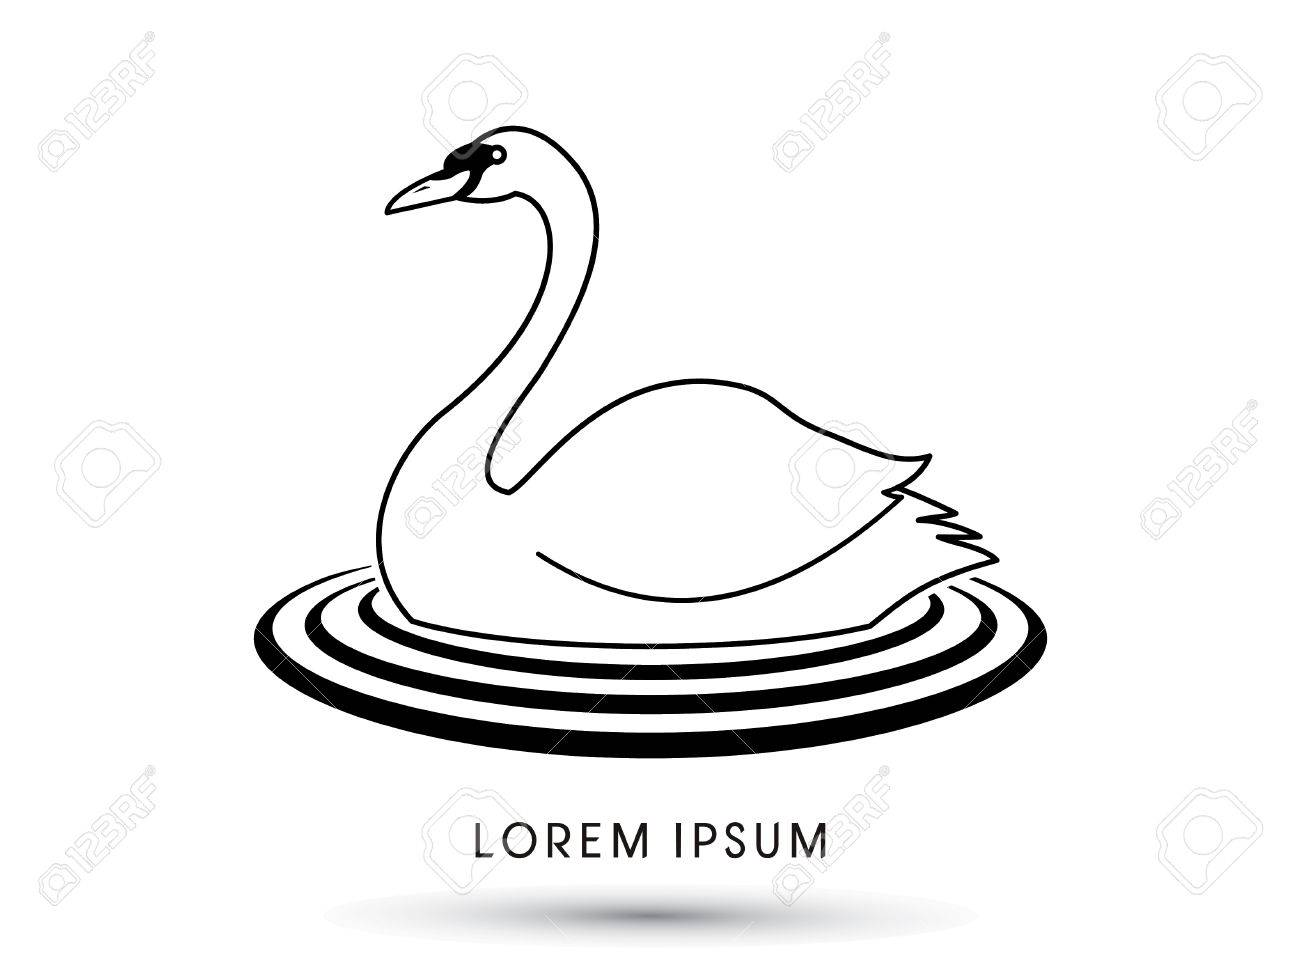 Swan Swimming Designed Using Outline Graphic Vector